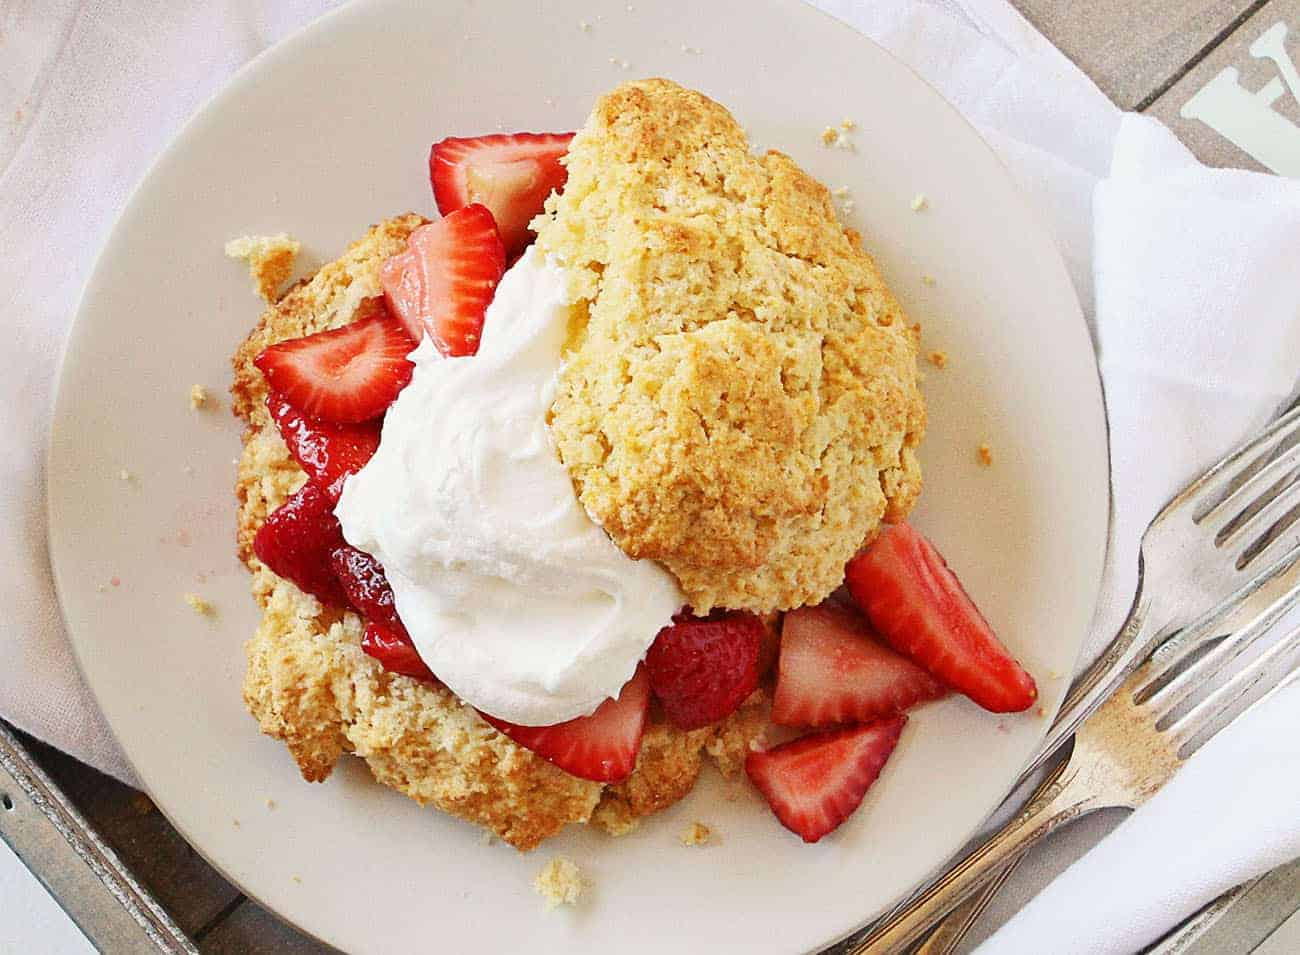 Overhead View of Tequila Strawberry Shortcake with Whipped Cream